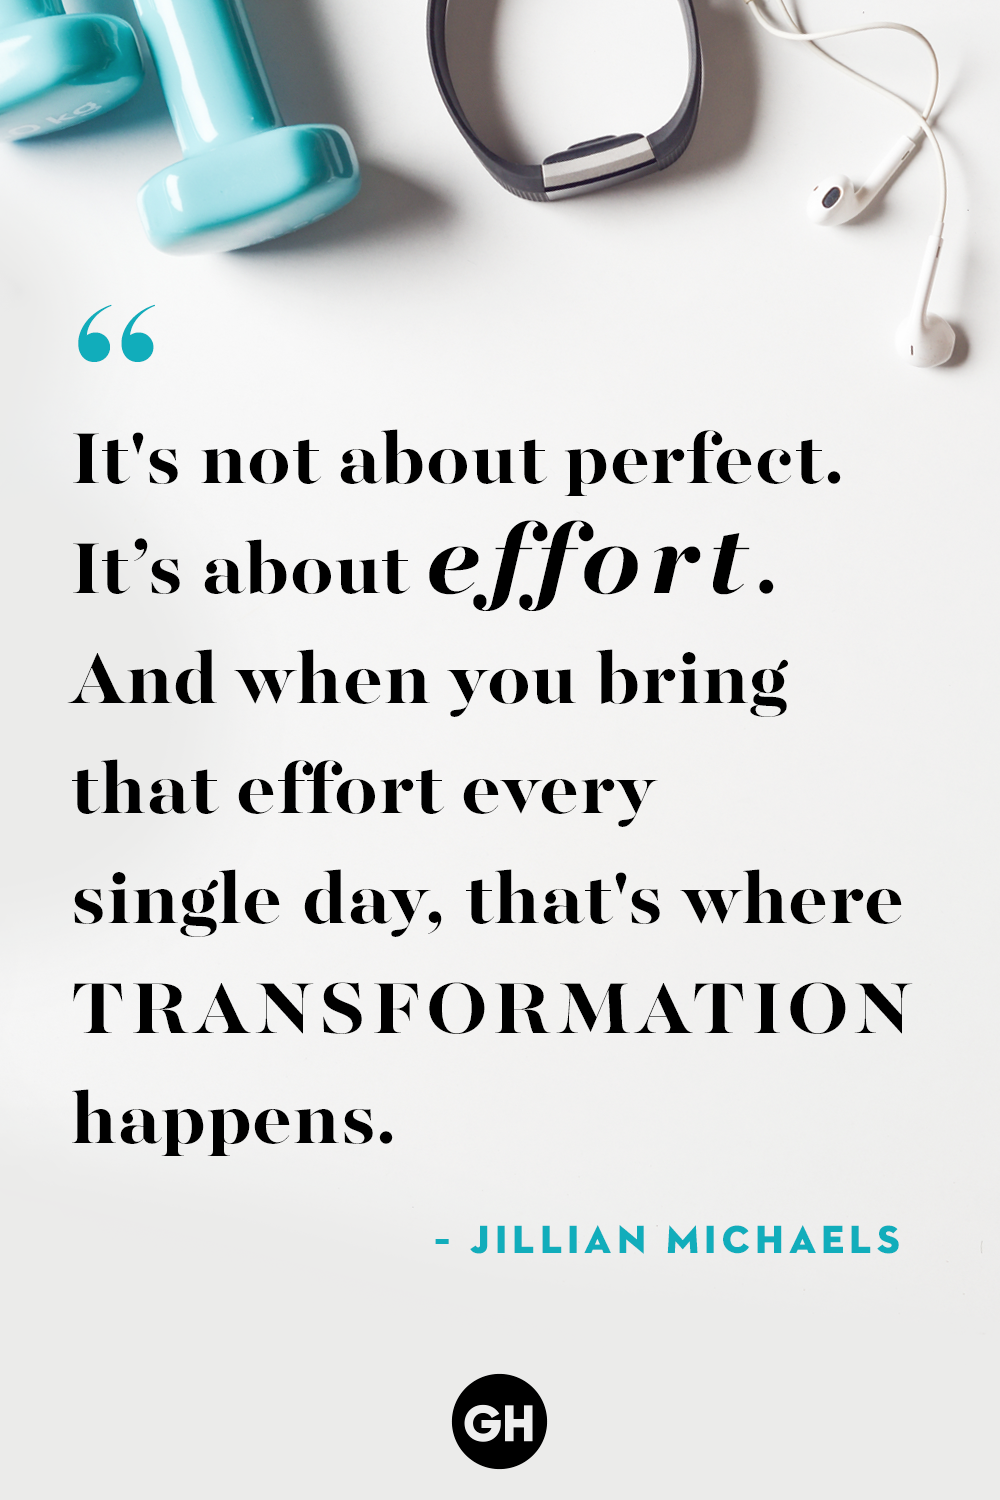 https://hips.hearstapps.com/hmg-prod.s3.amazonaws.com/images/weightloss-quotes-jillian-michaels-1564154651.png